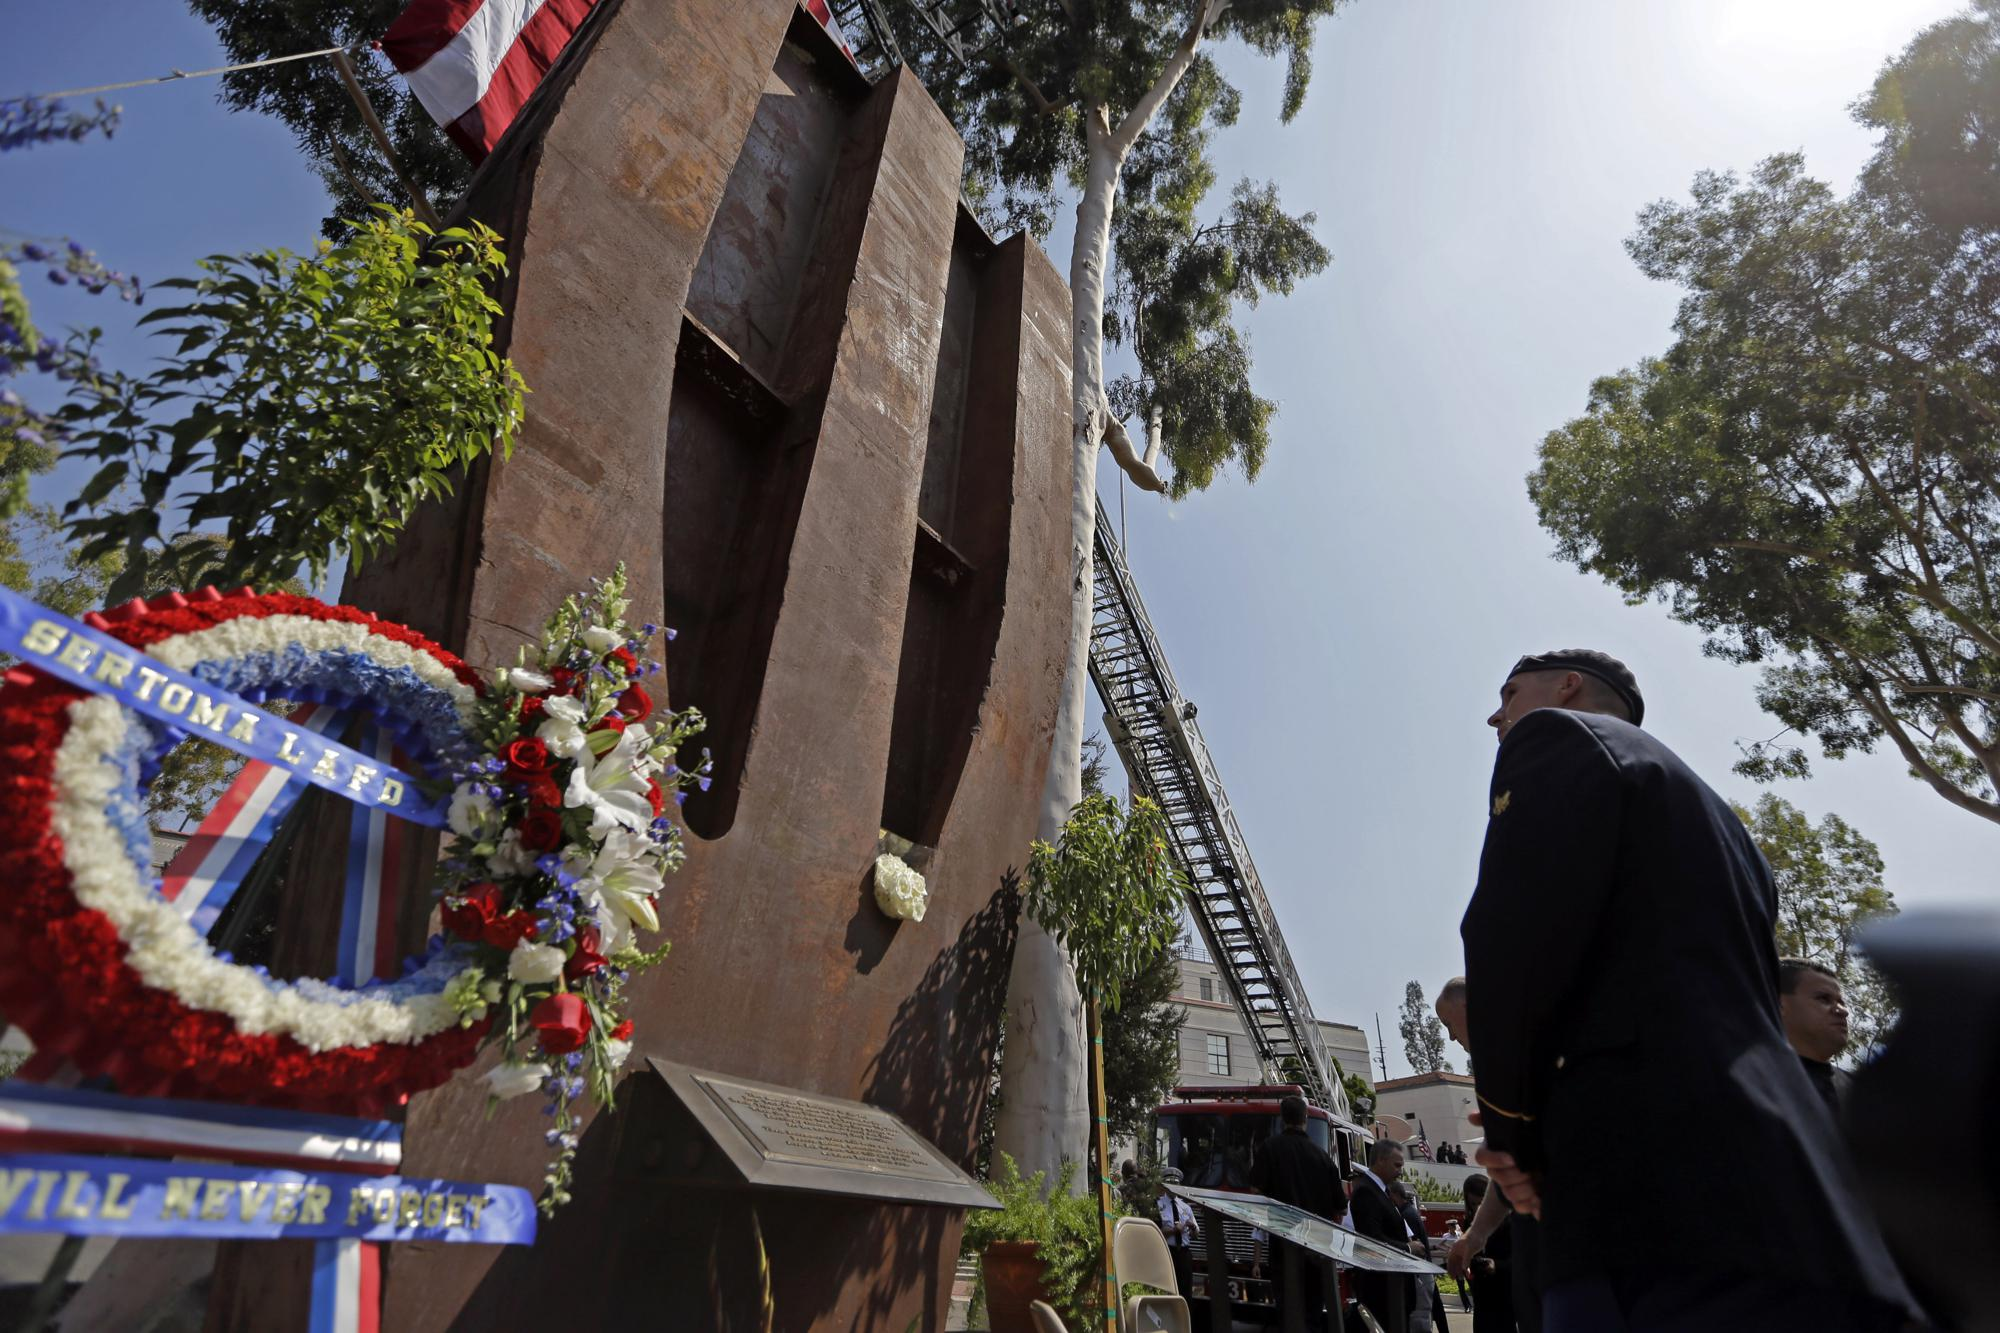 ADVANCE FOR PUBLICATION ON SUNDAY, SEPT. 5, AND THEREAFTER - FILE - In this Wednesday, Sept. 11, 2013 file photo, a U.S. army soldier pauses at a column from the South Tower of the World Trade Center at the Los Angeles Fire Department's Sept. 11 remembrance ceremony in Los Angeles. (AP Photo/Reed Saxon, File)